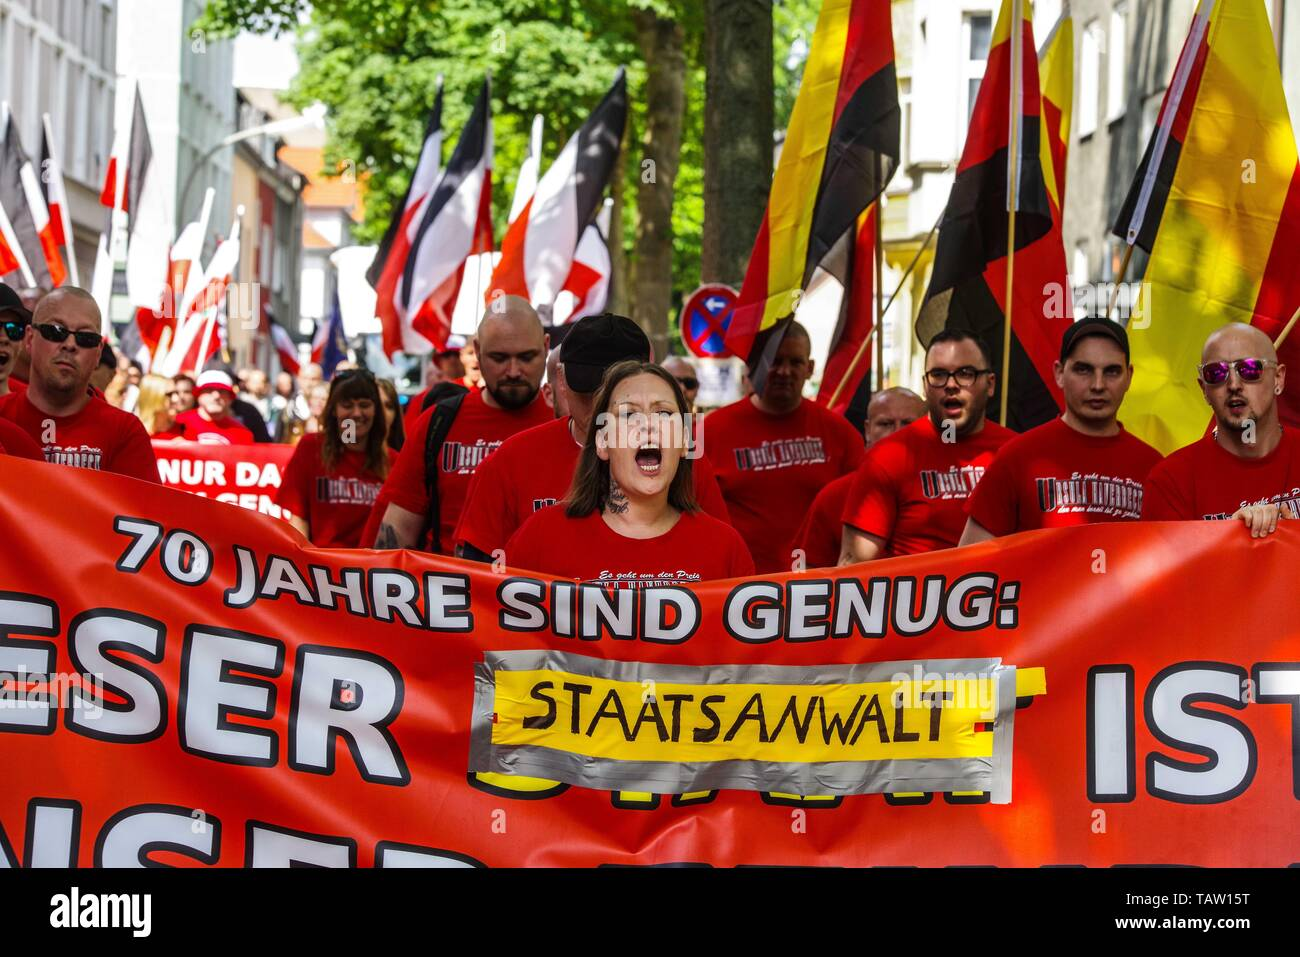 Dortmund, Nordrhein Westfalen, Germany. 25th May, 2019. Neonazis in Dortmund, Germany chant slogans through the streets of the city. Prior to the European Elections, the neonazi party Die Rechte (The Right) organized a rally in the German city of Dortmund to promote their candidate, the incarcerated Holocaust denier Ursula Haverbeck. The demonstration and march were organized by prominent local political figure and neonazi activist Michael Brueck (Michael Brück) who enlisted the help of not only German neonazis, but also assistance from Russian, Bulgarian, Hungarian, and Dutch groups with t Stock Photo